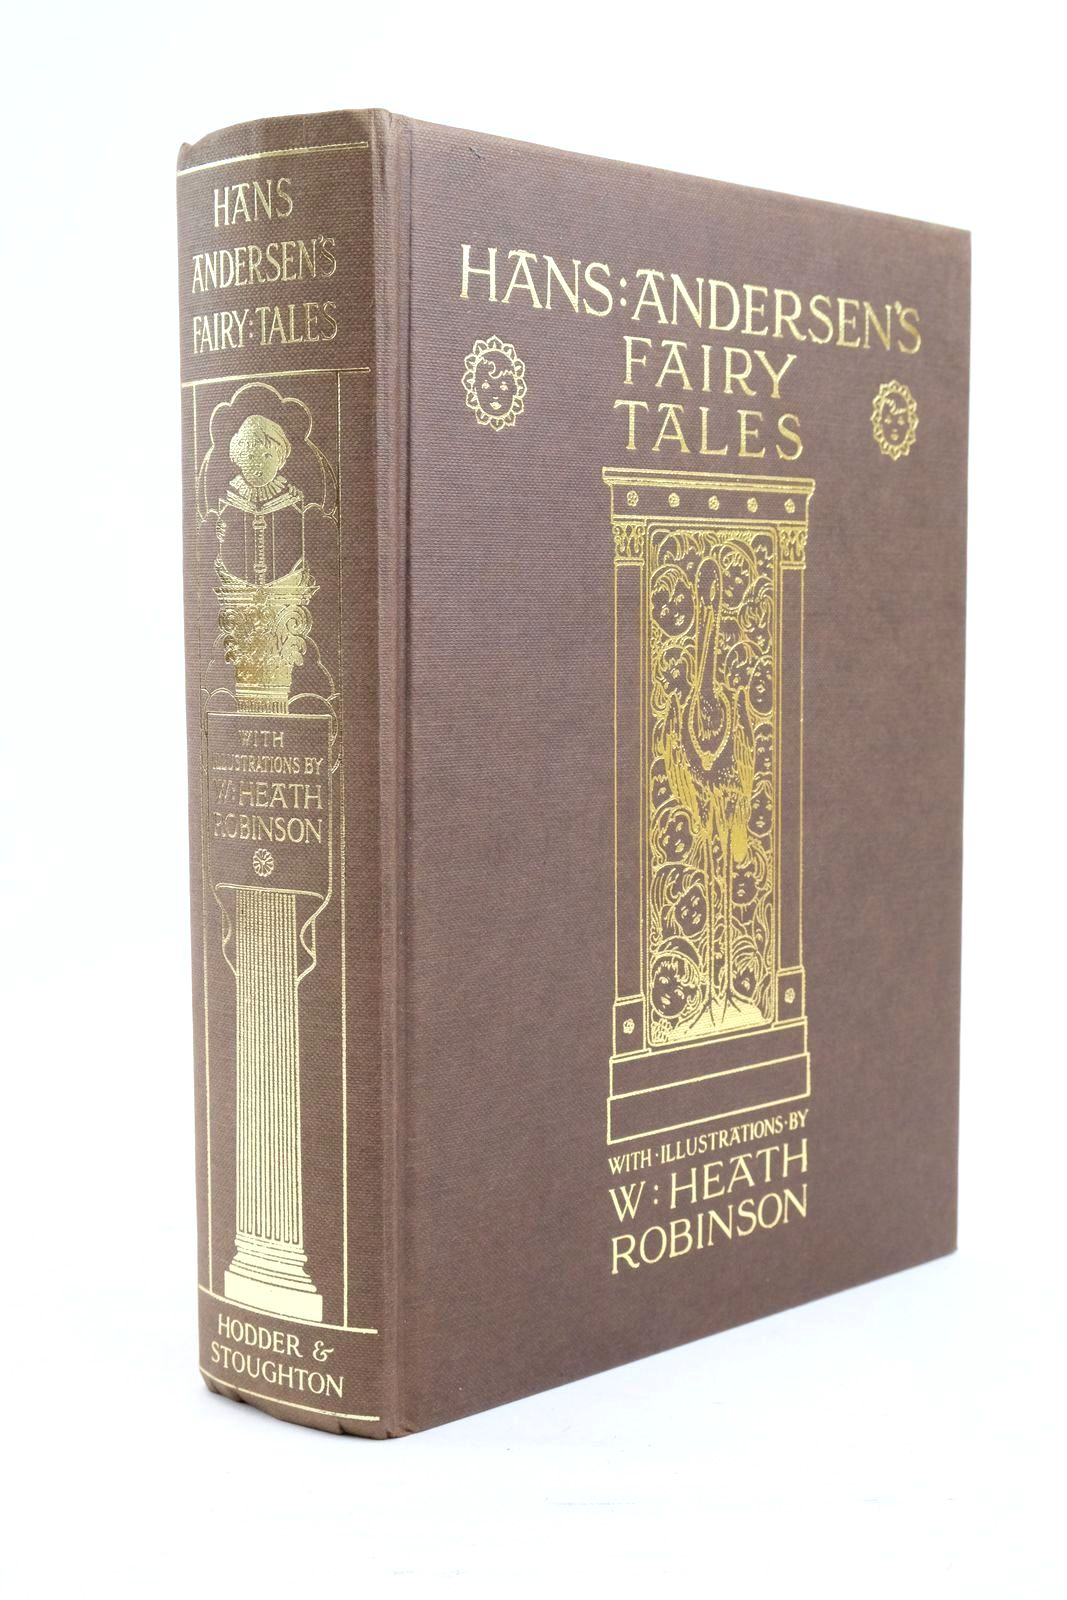 Photo of HANS ANDERSEN'S FAIRY TALES written by Andersen, Hans Christian illustrated by Robinson, W. Heath published by Hodder & Stoughton (STOCK CODE: 1320796)  for sale by Stella & Rose's Books